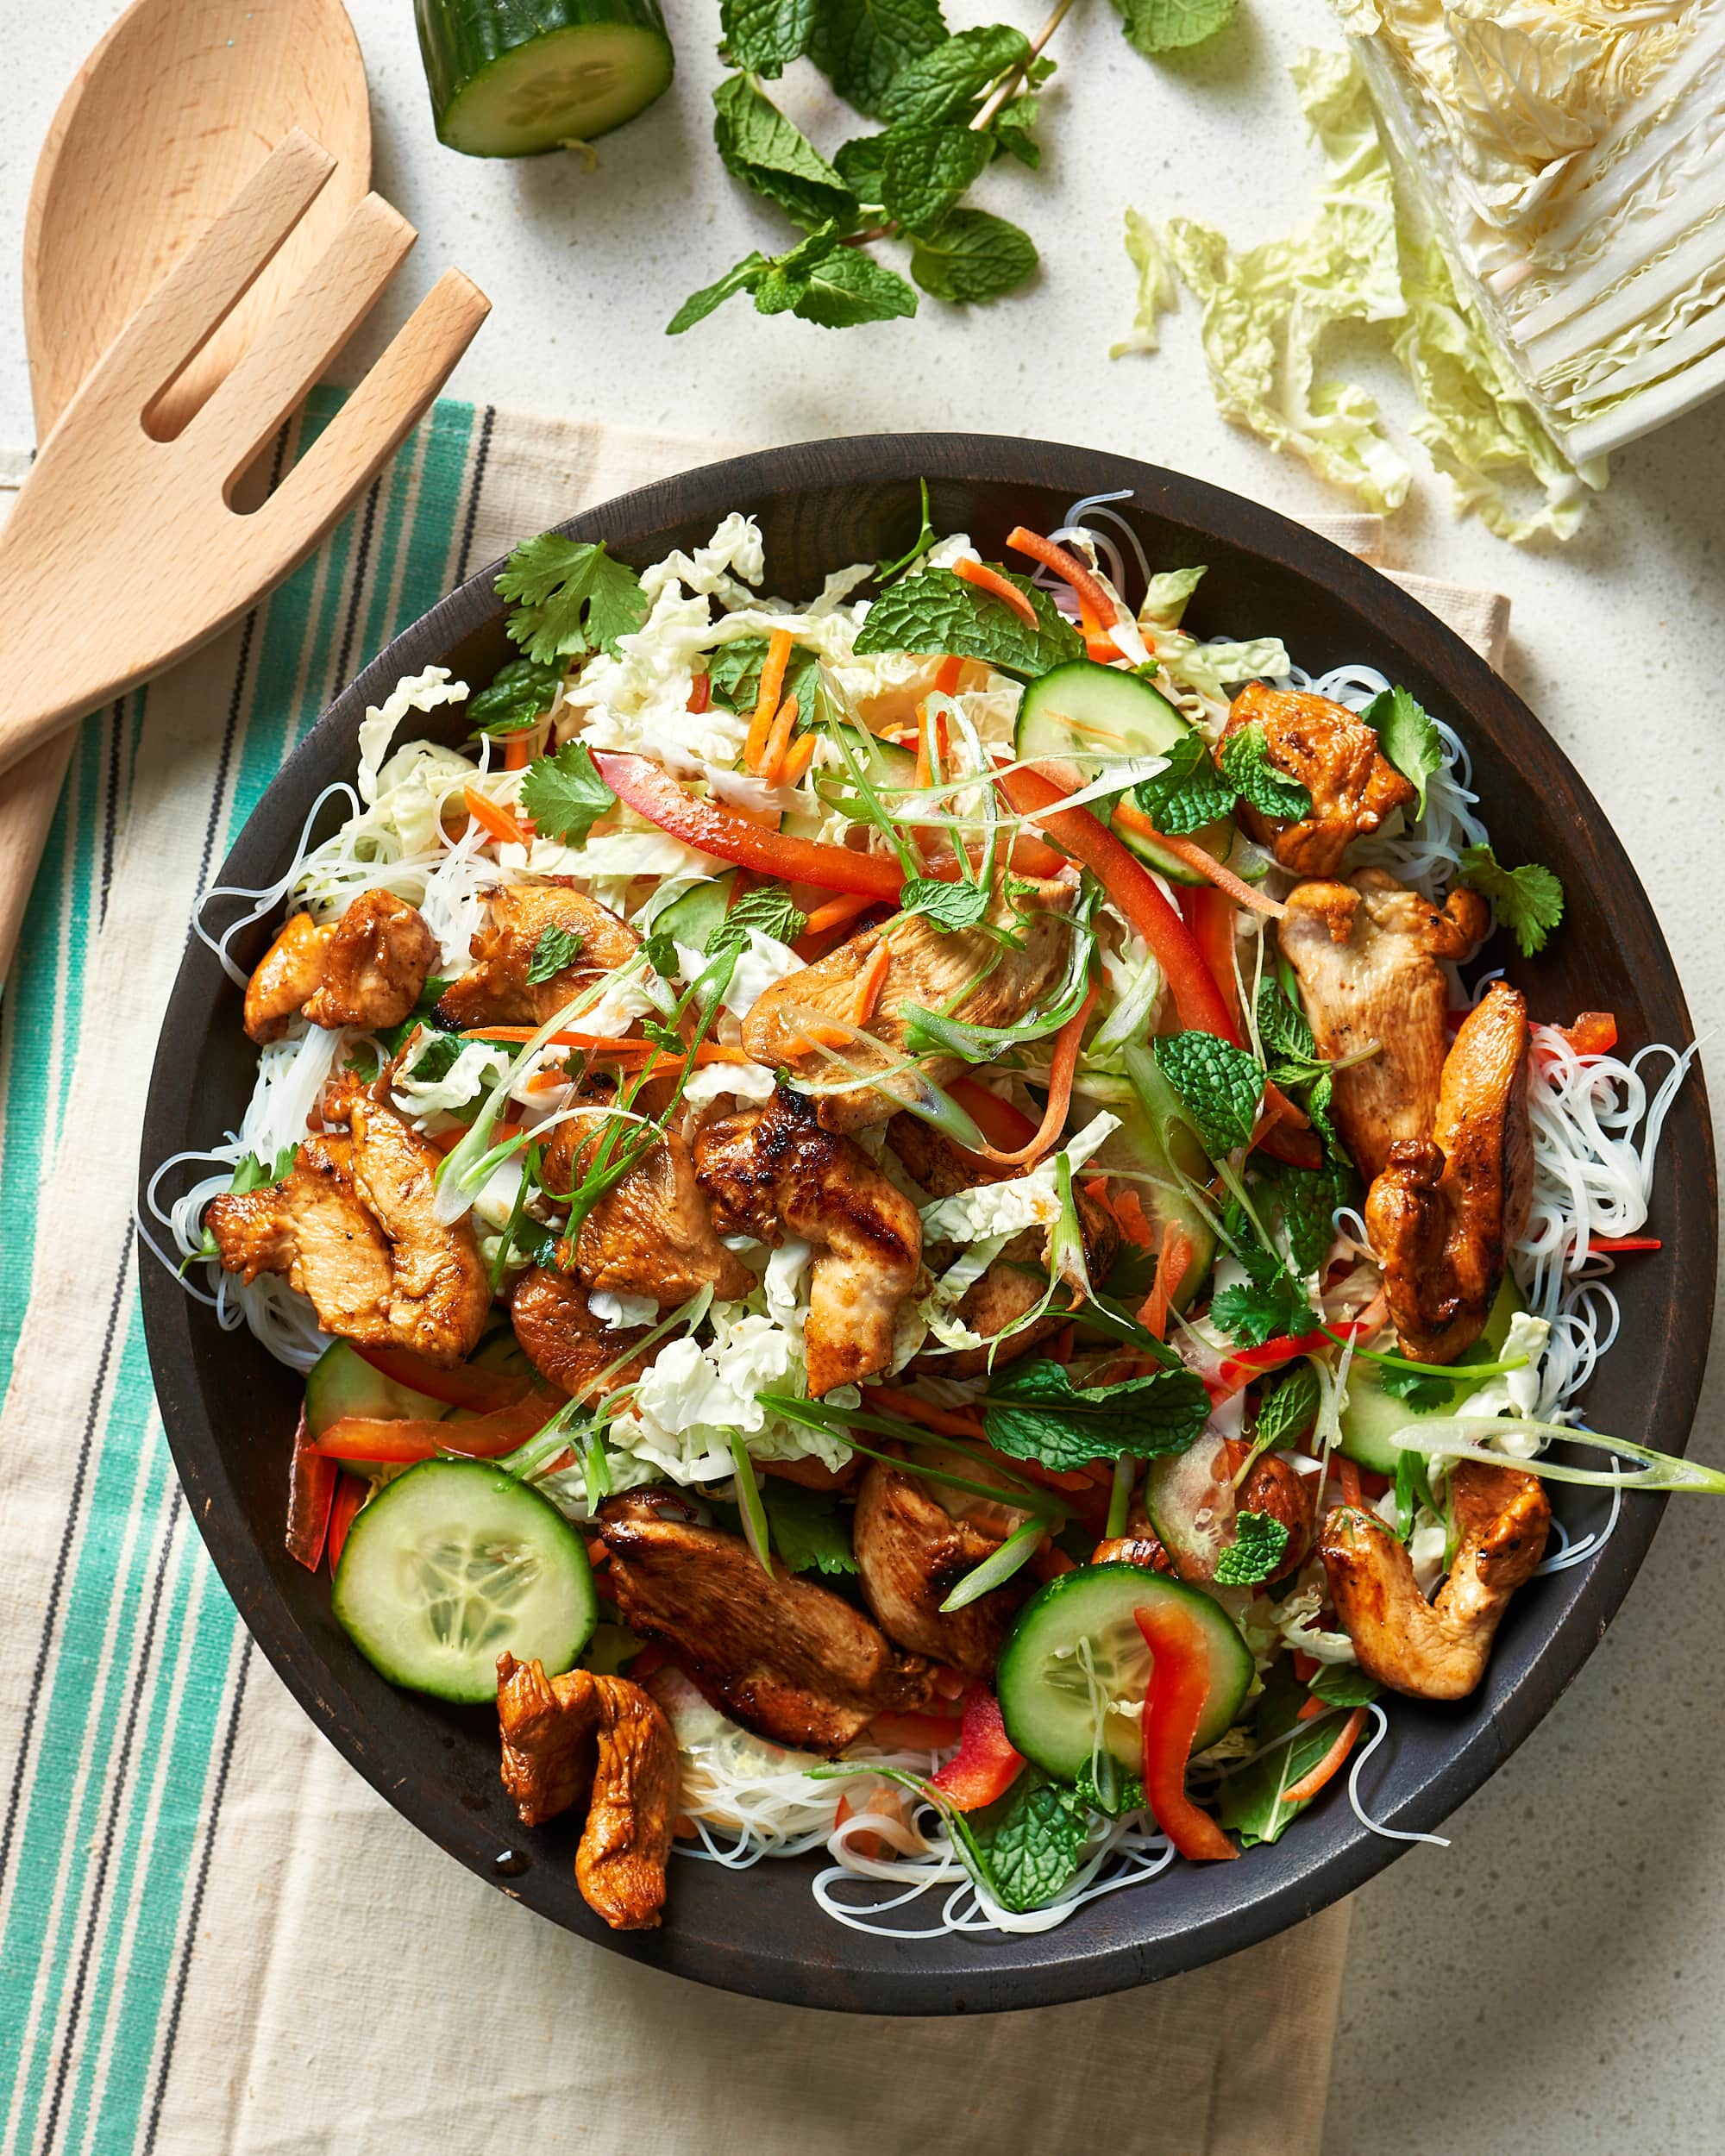 Recipe: Vietnamese-Style Chicken & Noodle Salad